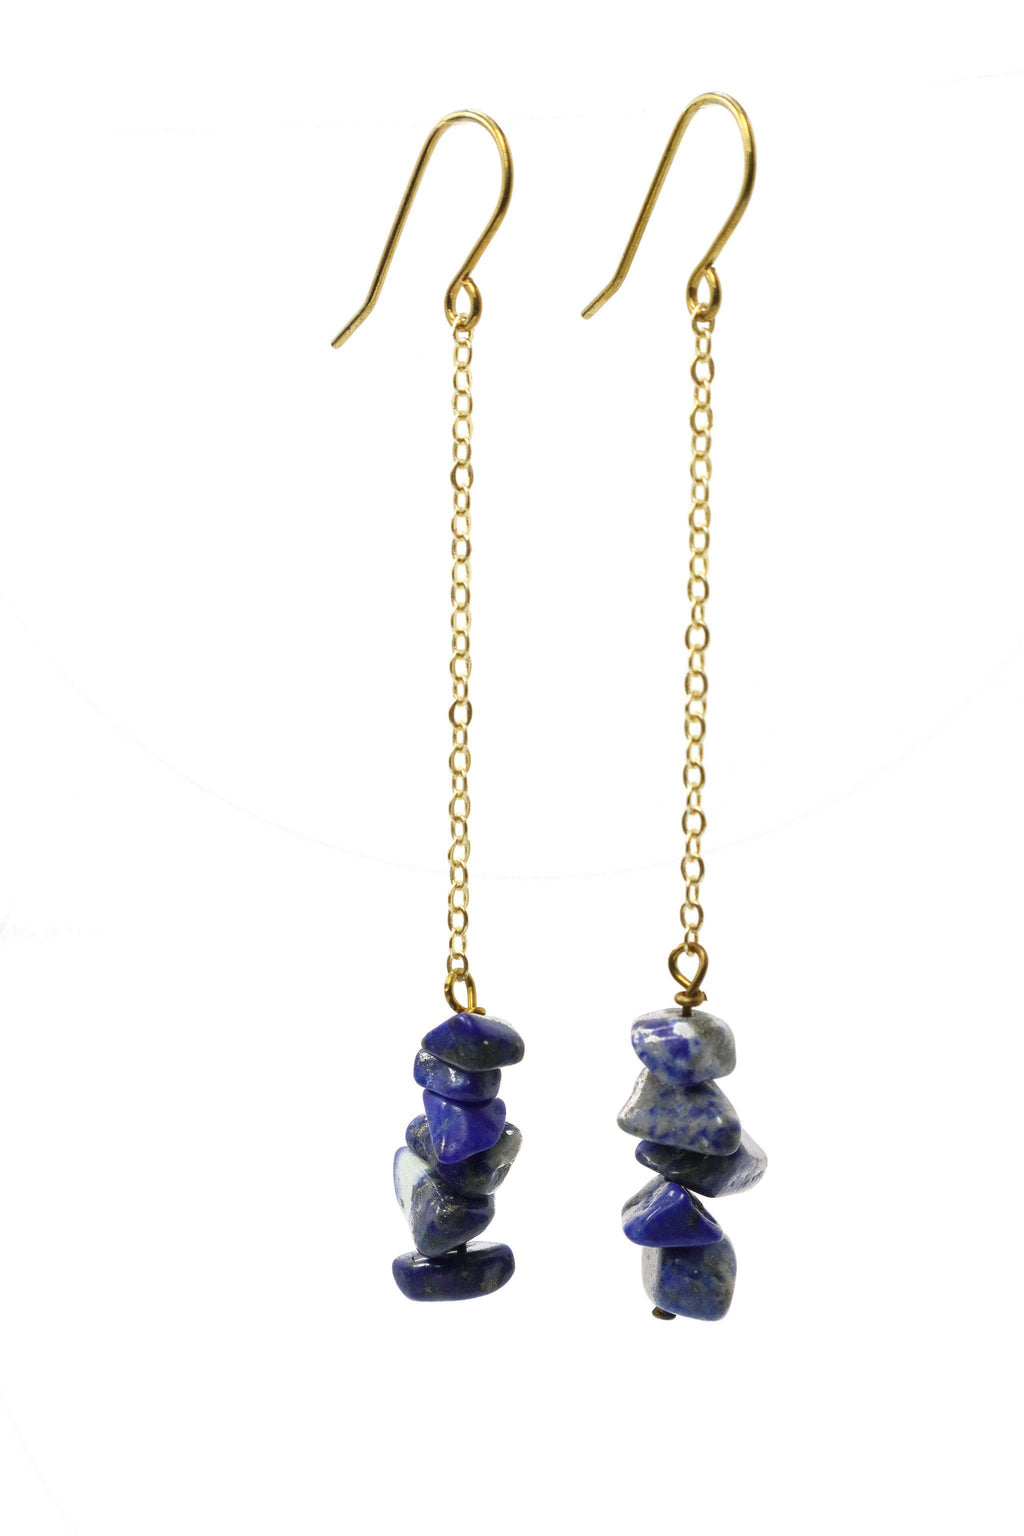 These stacked stone earrings feature a beautiful dark blue lapis lazuli chip gemstone on a gold plated chain with gold plated hooks.